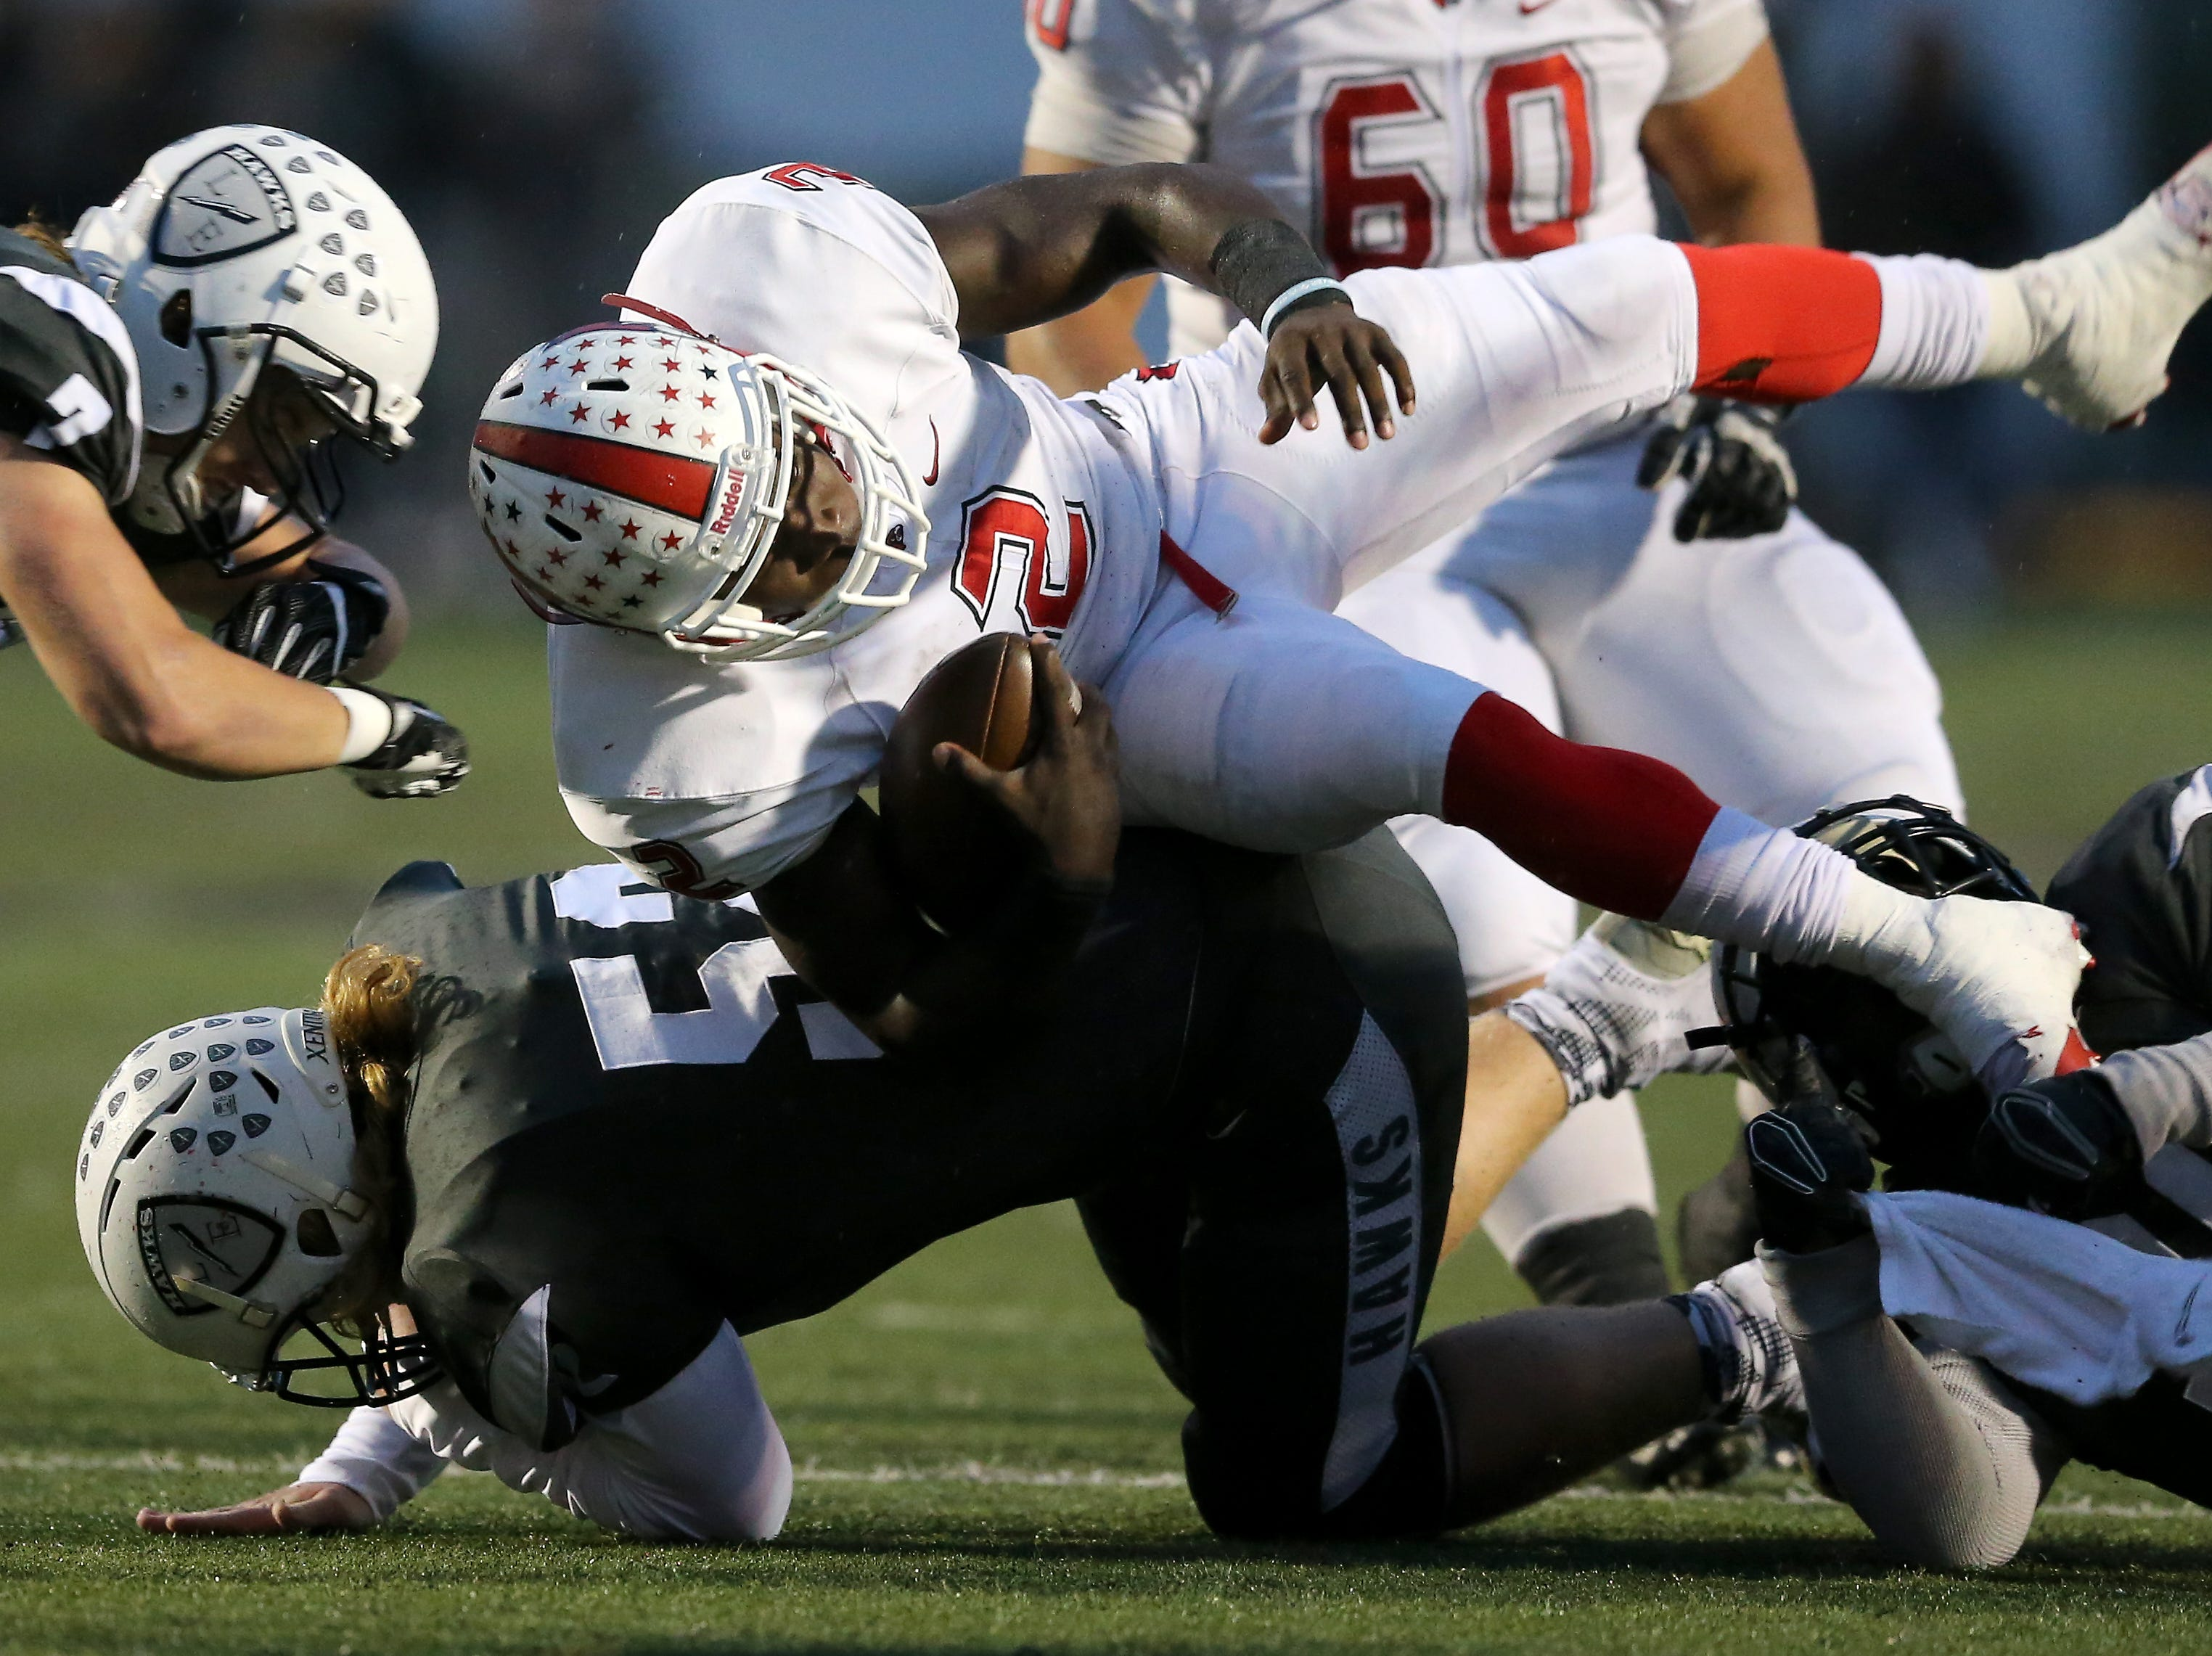 Colerain Cardinals quarterback Deante Smith-Moore (2) is tackled by Lakota East Thunderhawks defensive tackle Owen Opp (52) in the first quarter during a high school football game between the Colerain Cardinals and the Lakota East Thunderhawks, Friday, Oct. 12, 2018, at Lakota East High School in Liberty Township, Ohio.